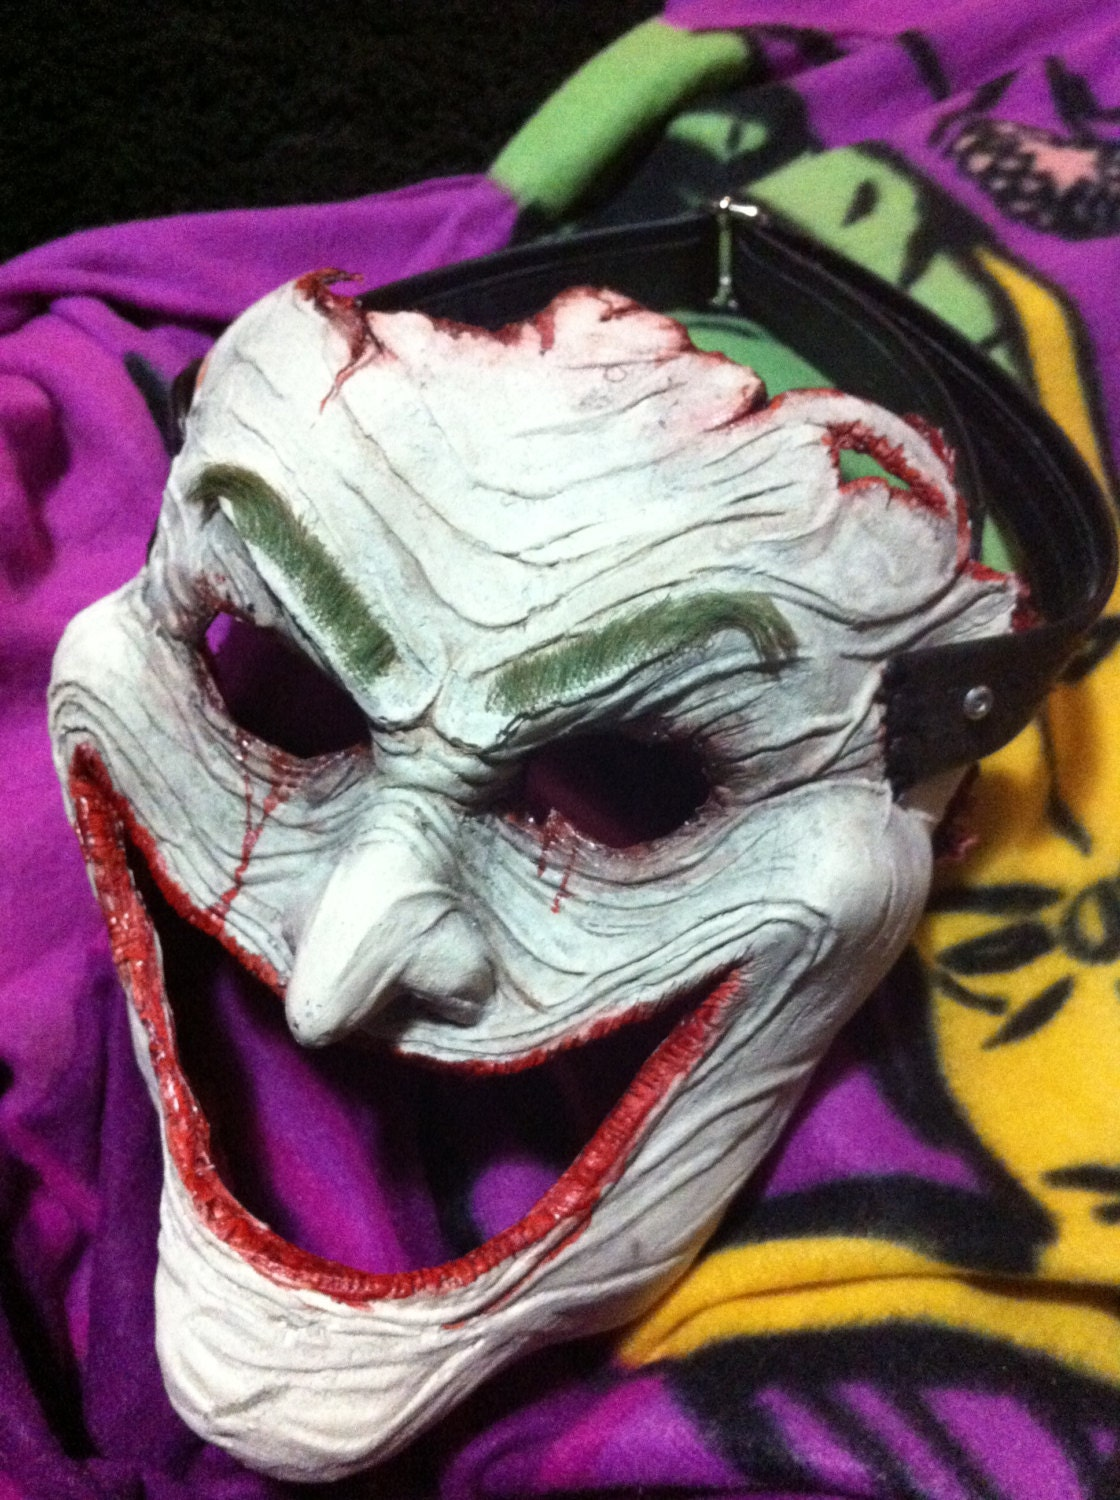 new 52 joker how to make costume horns